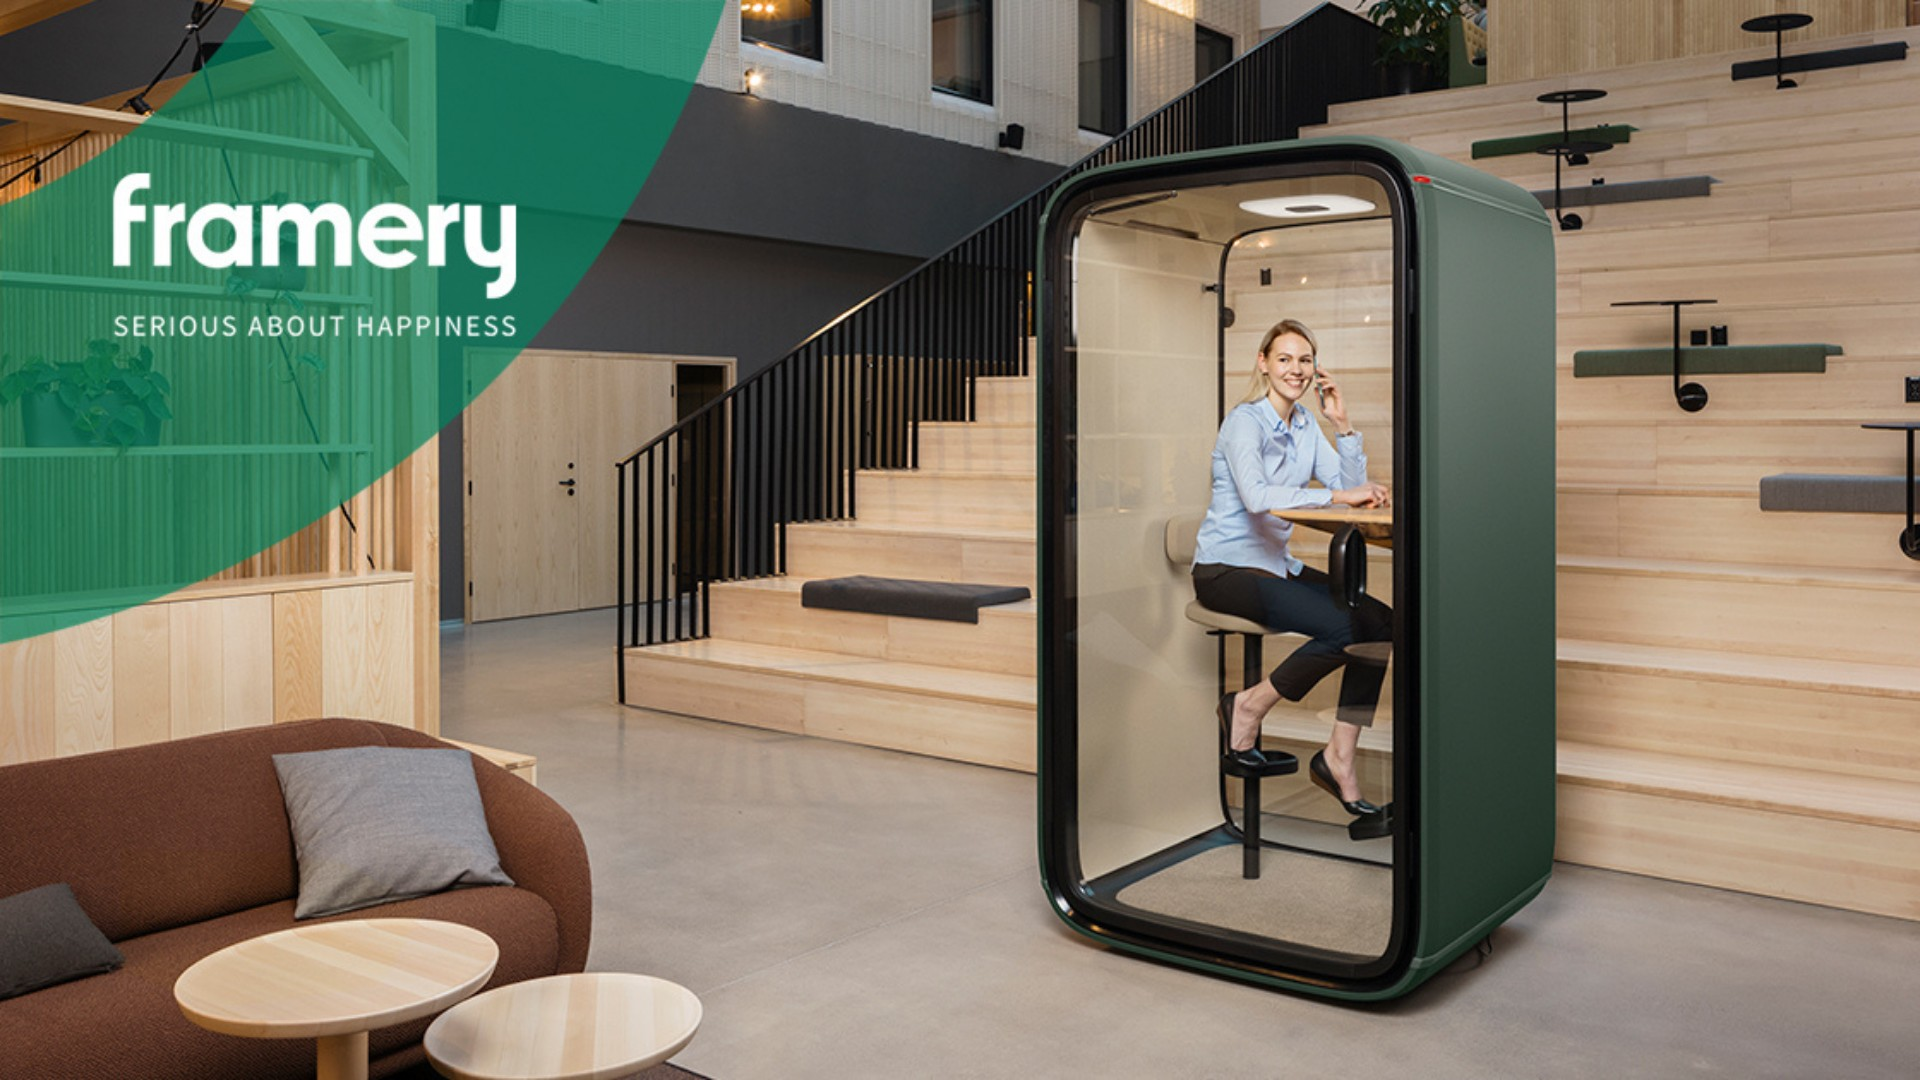 Our partner, Framery,  has introduced a new product to the market -  the Framery One Connected booth!